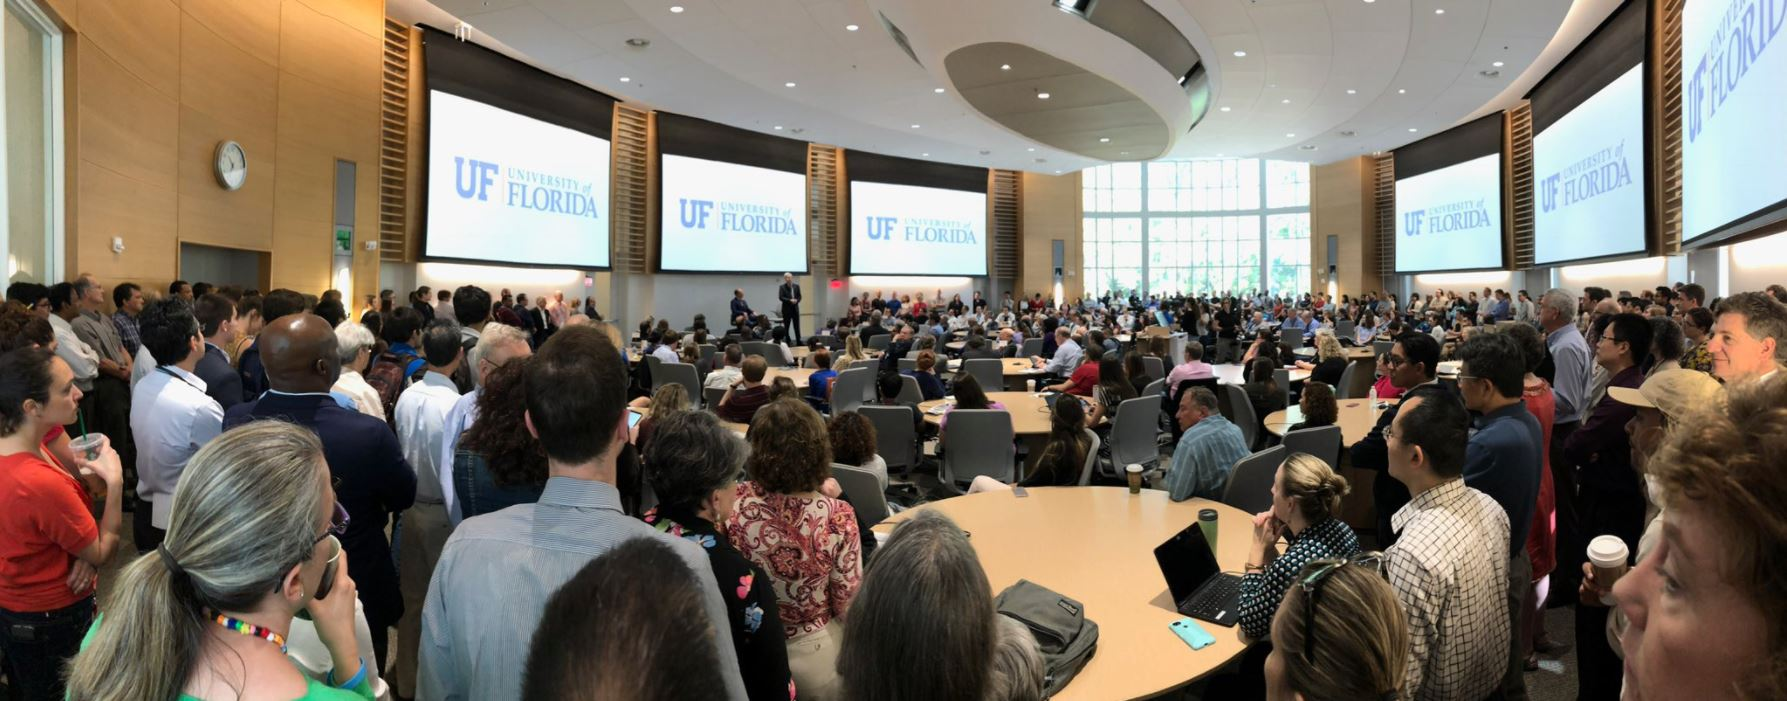 Francis Collins addresses a packed conference hall at the University of Florida